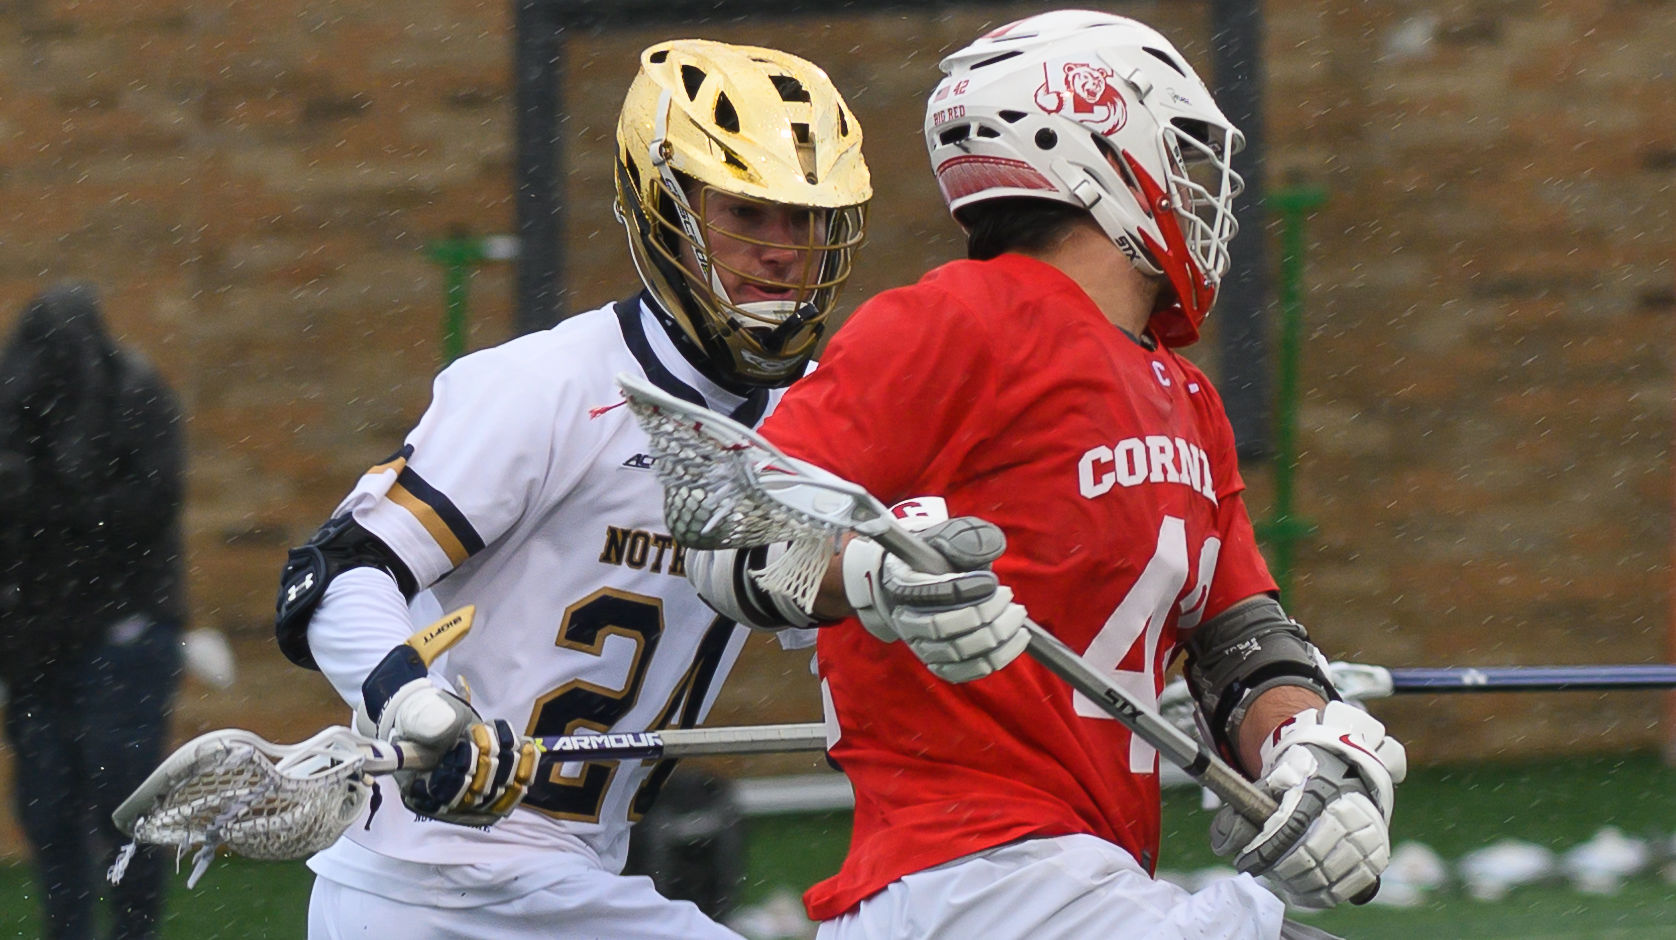 Notre Dame Lacrosse Player John Hallenbeck from Indianapolis, Indiana